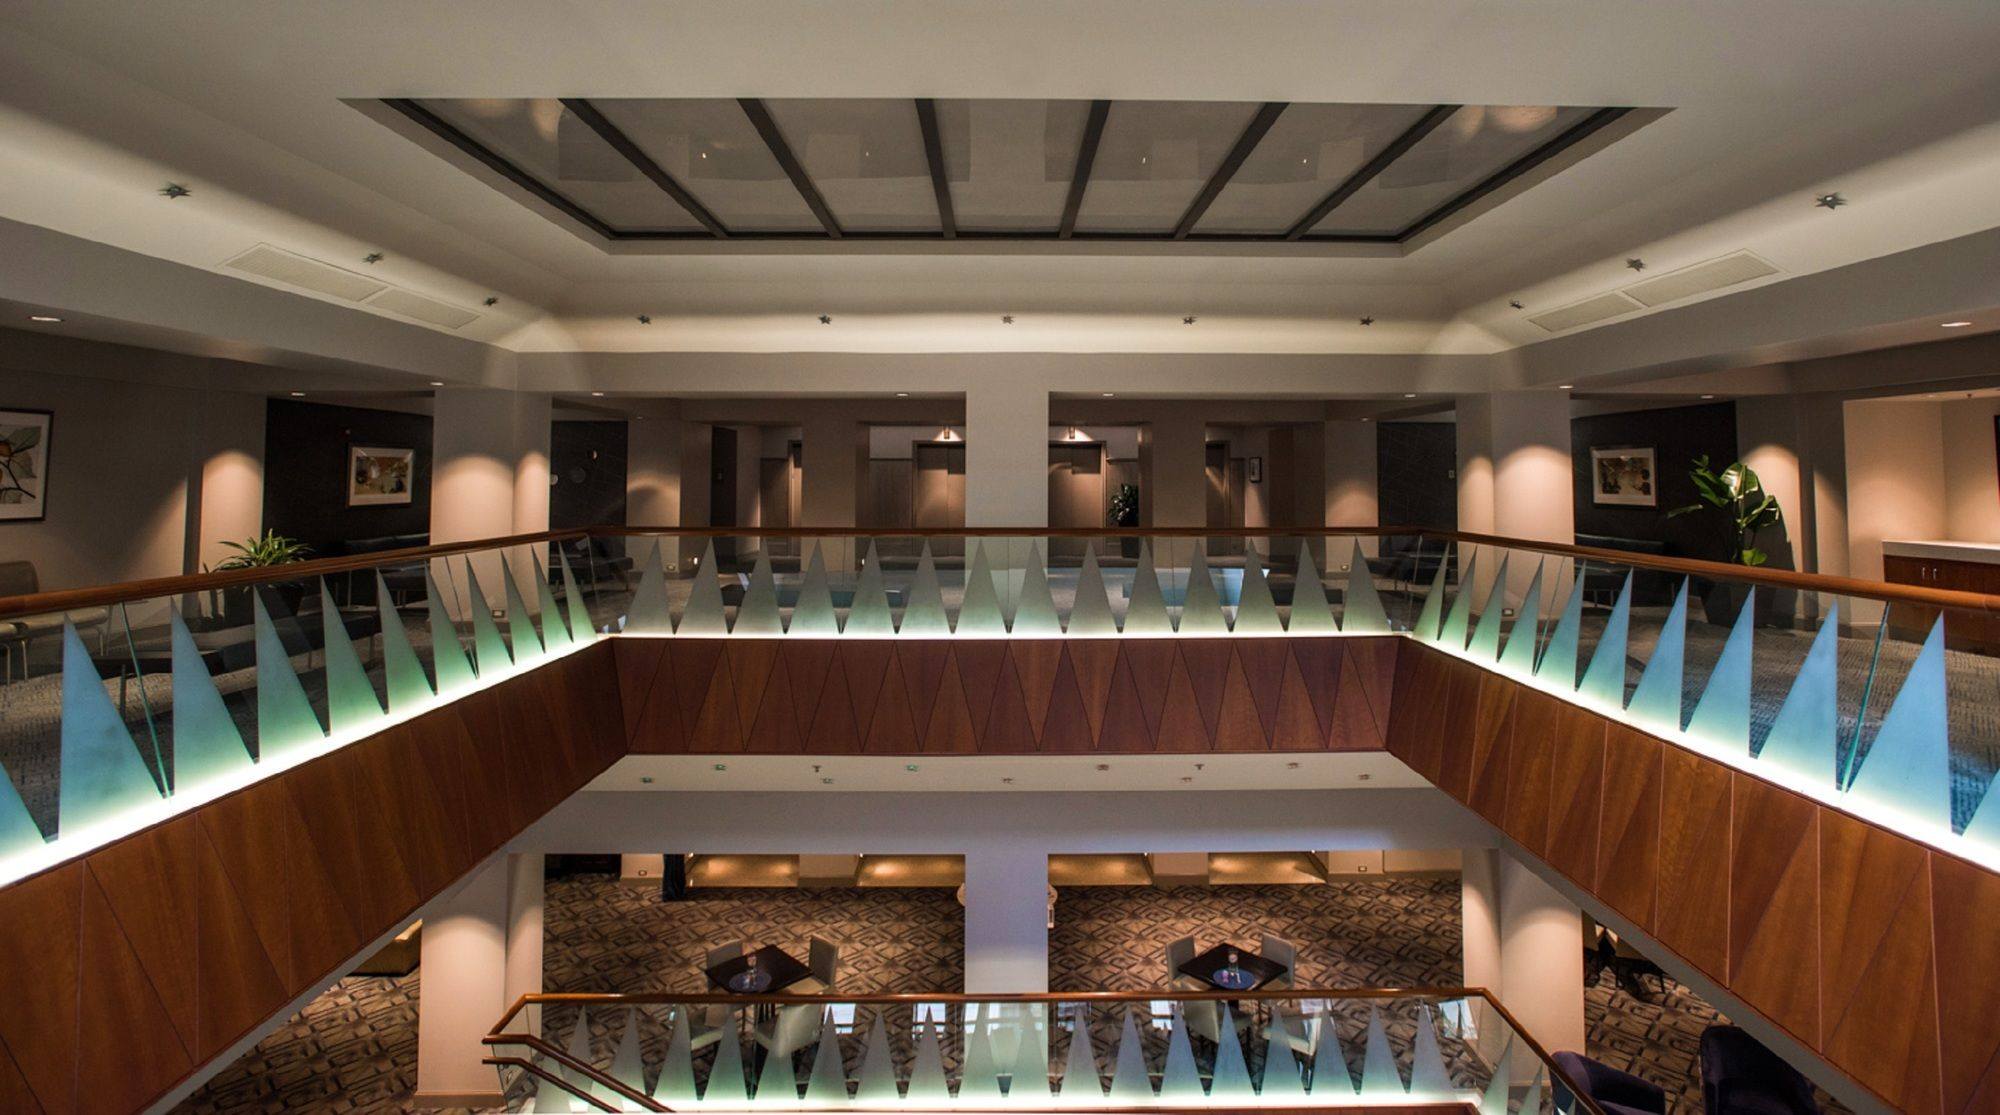 Dallas Hotel Coupons for Dallas, Texas - FreeHotelCoupons.com